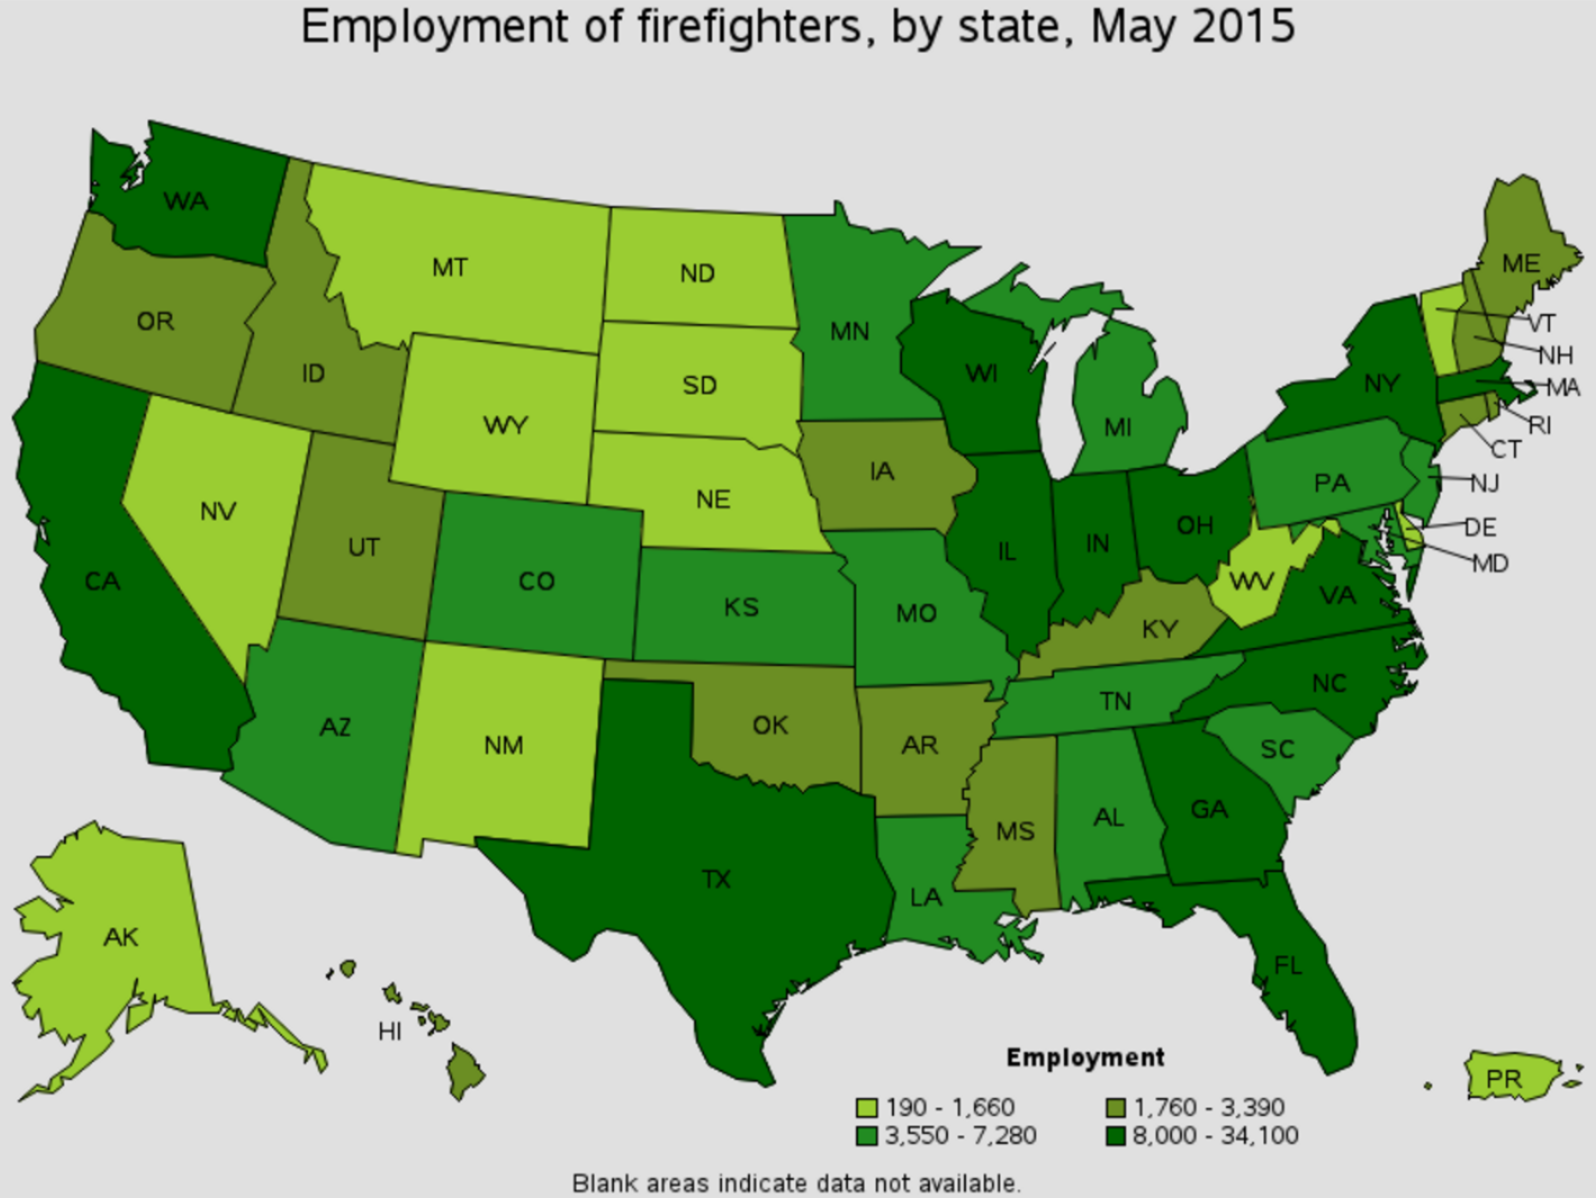 firefighter job outlook by state Winamac Indiana